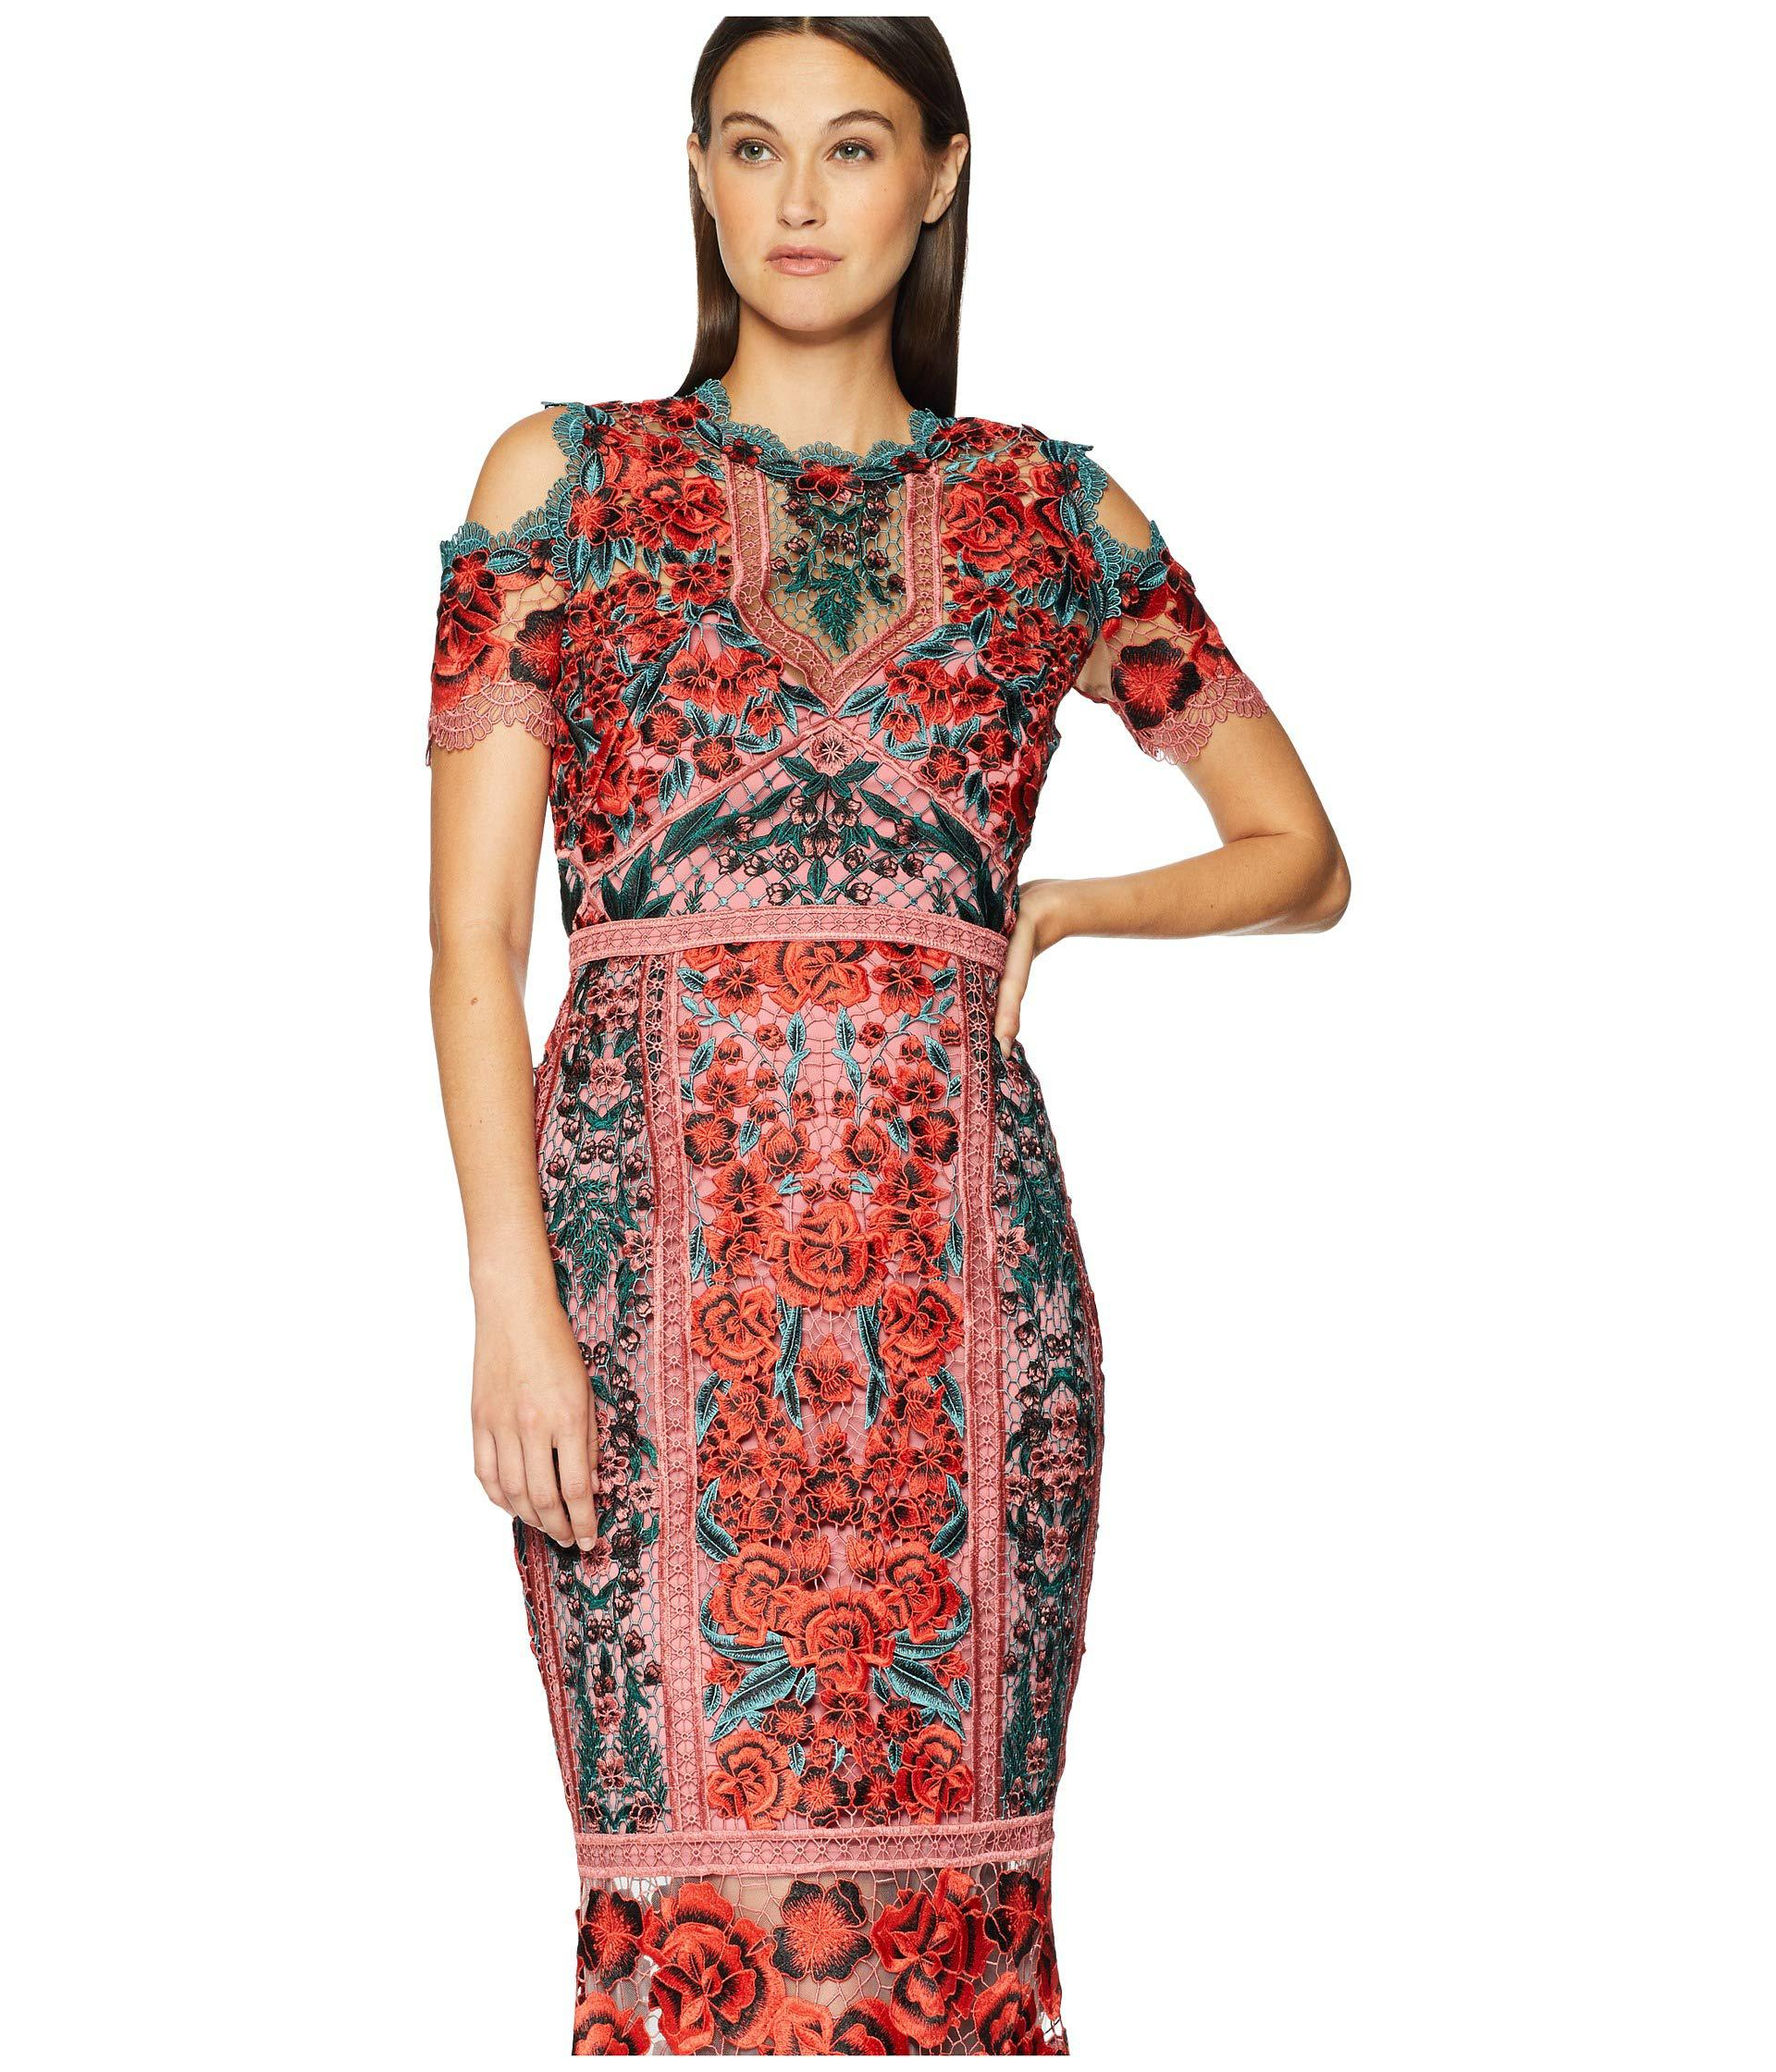 a11148c3a39 Marchesa Notte Lace Tea Length Cocktail Dress - Gomes Weine AG